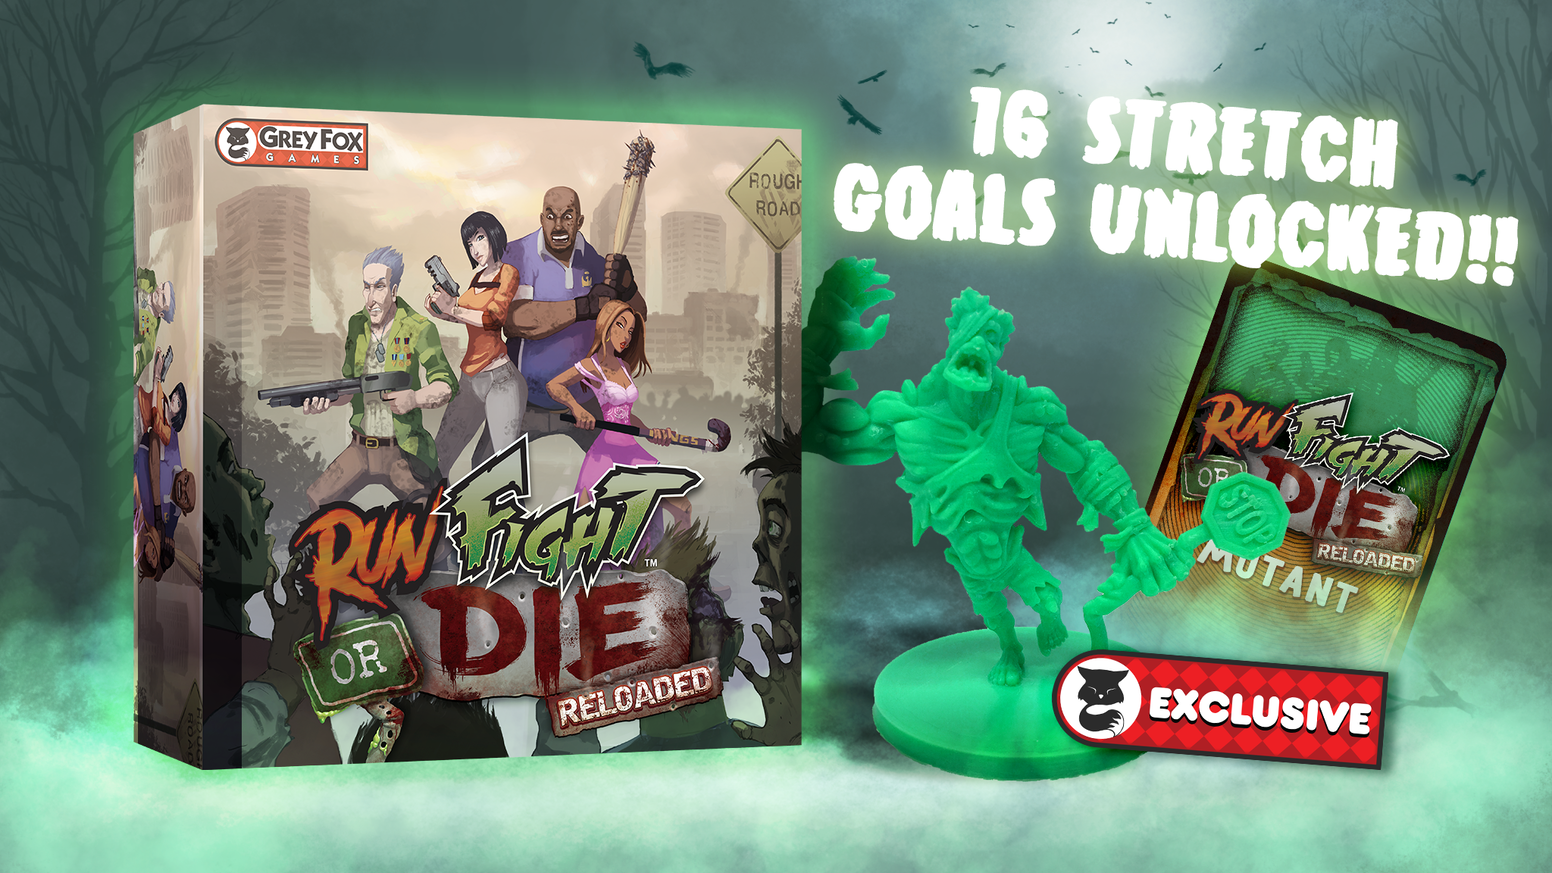 A complete reboot of the popular Run, Fight or Die dice game by Richard Launius of Arkham Horror fame.